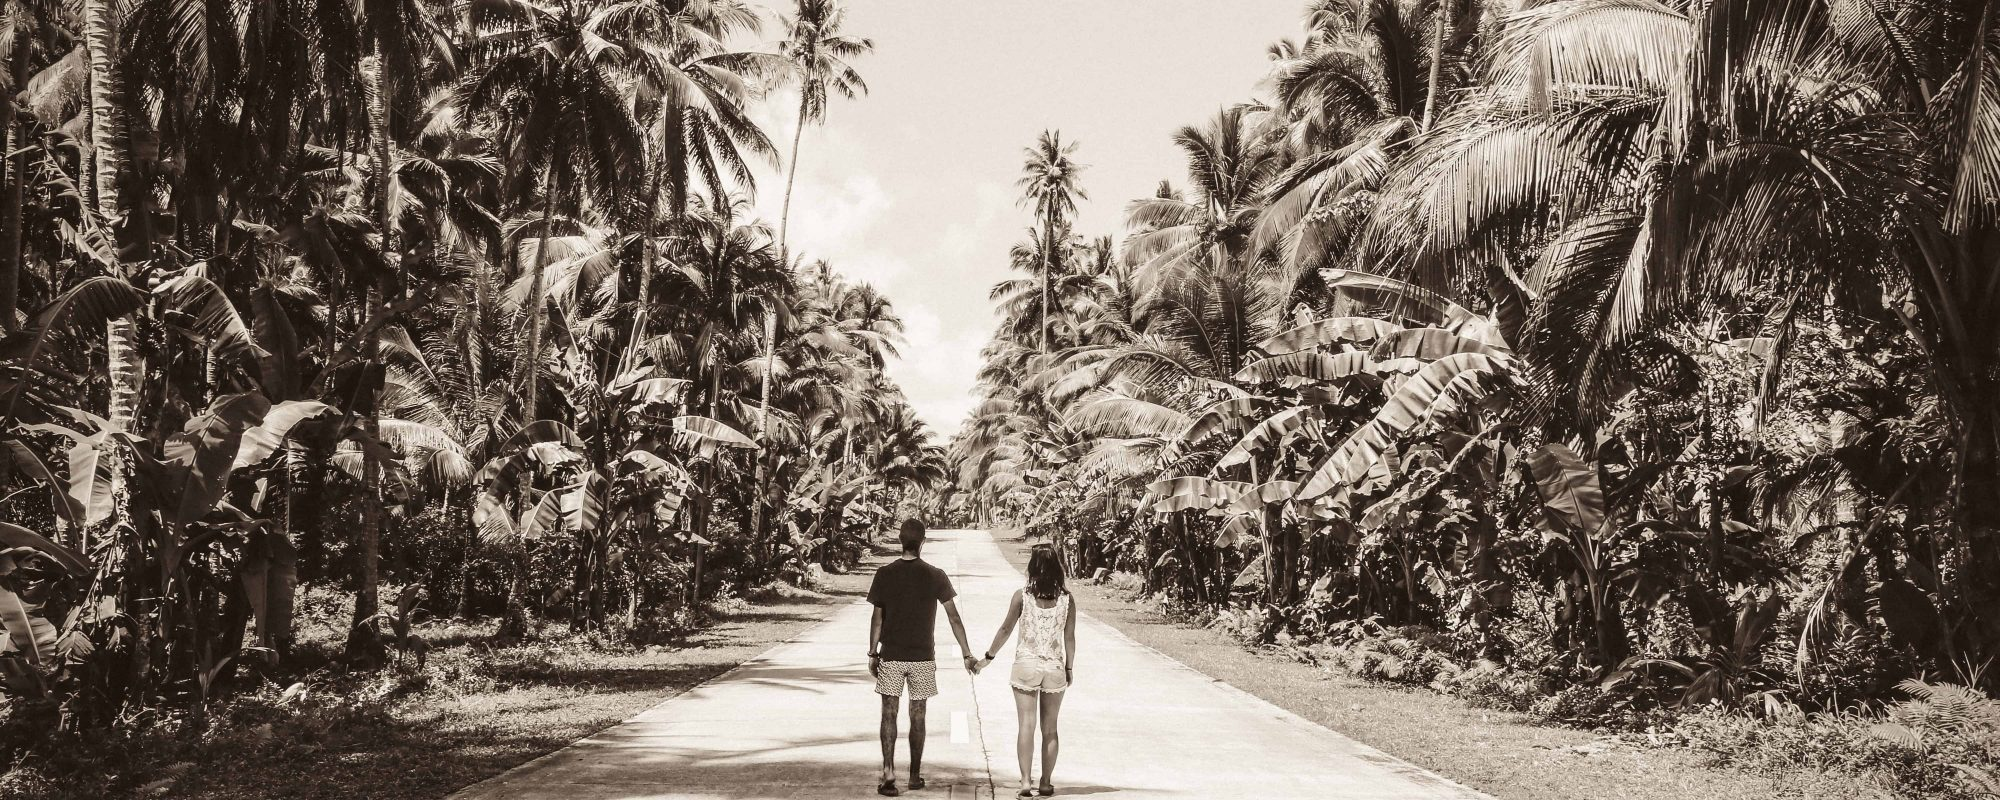 Siargao_Philippines_Two globetrotters VINTAGE